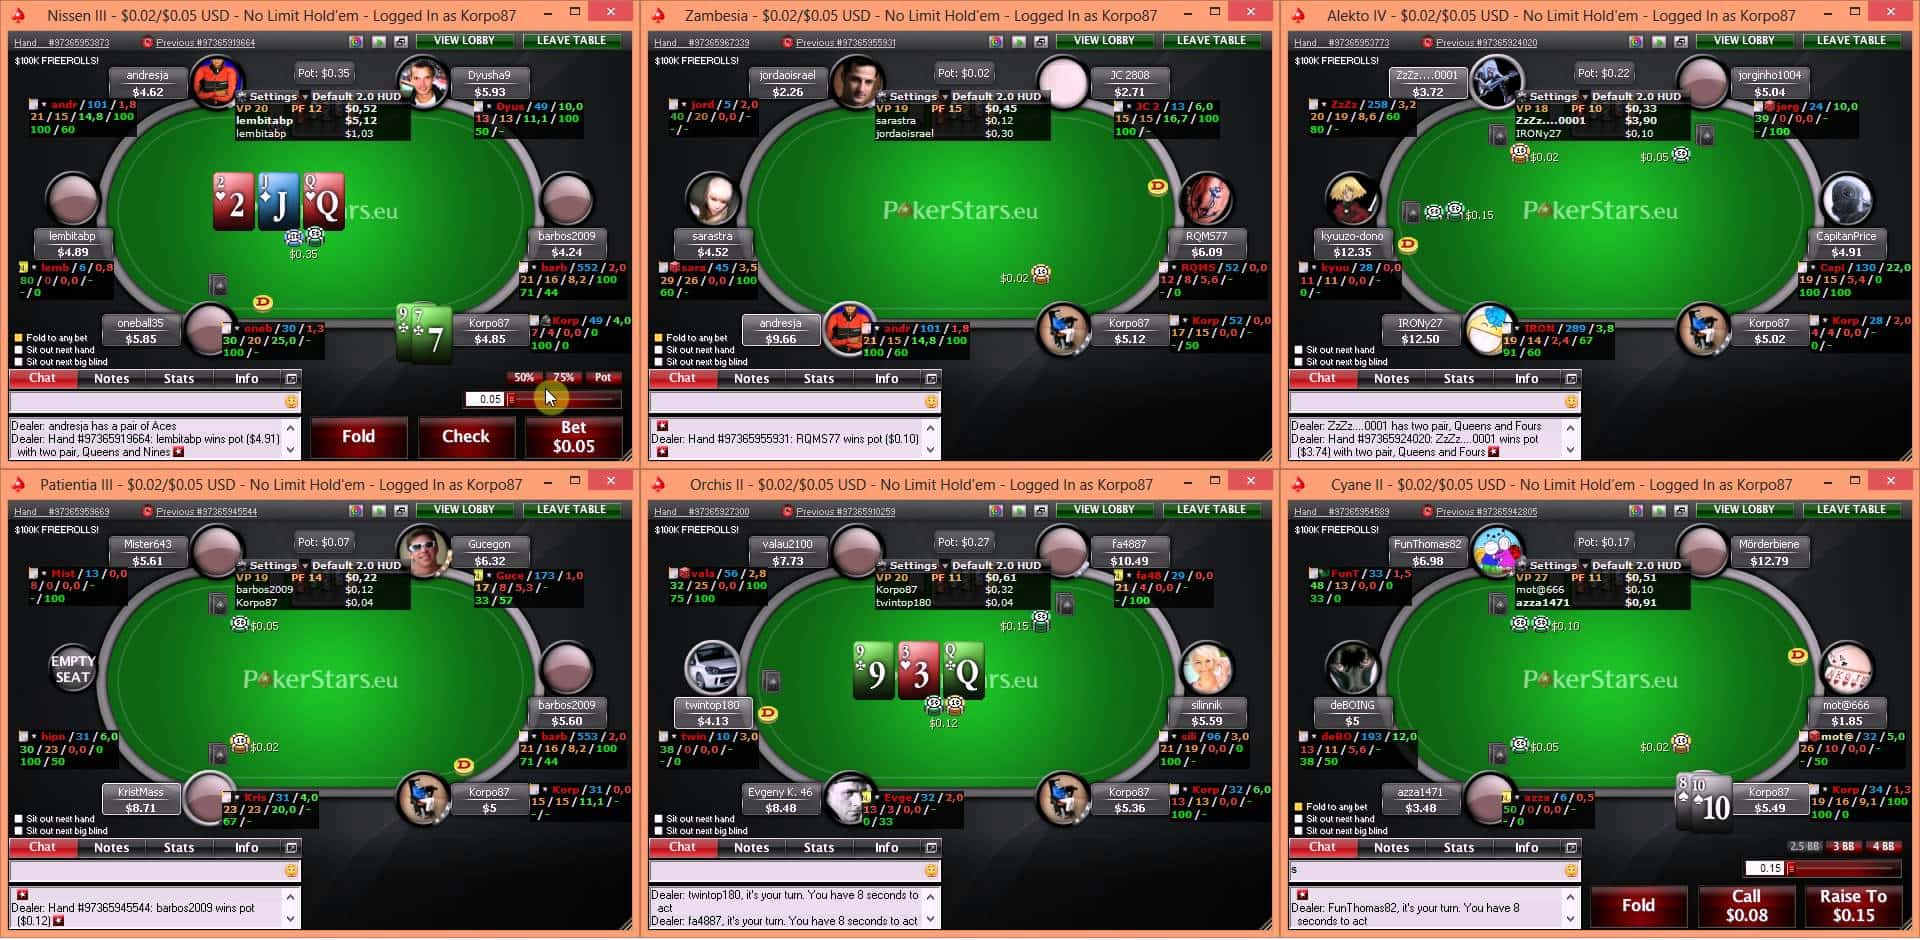 6-table-pokerstars-large